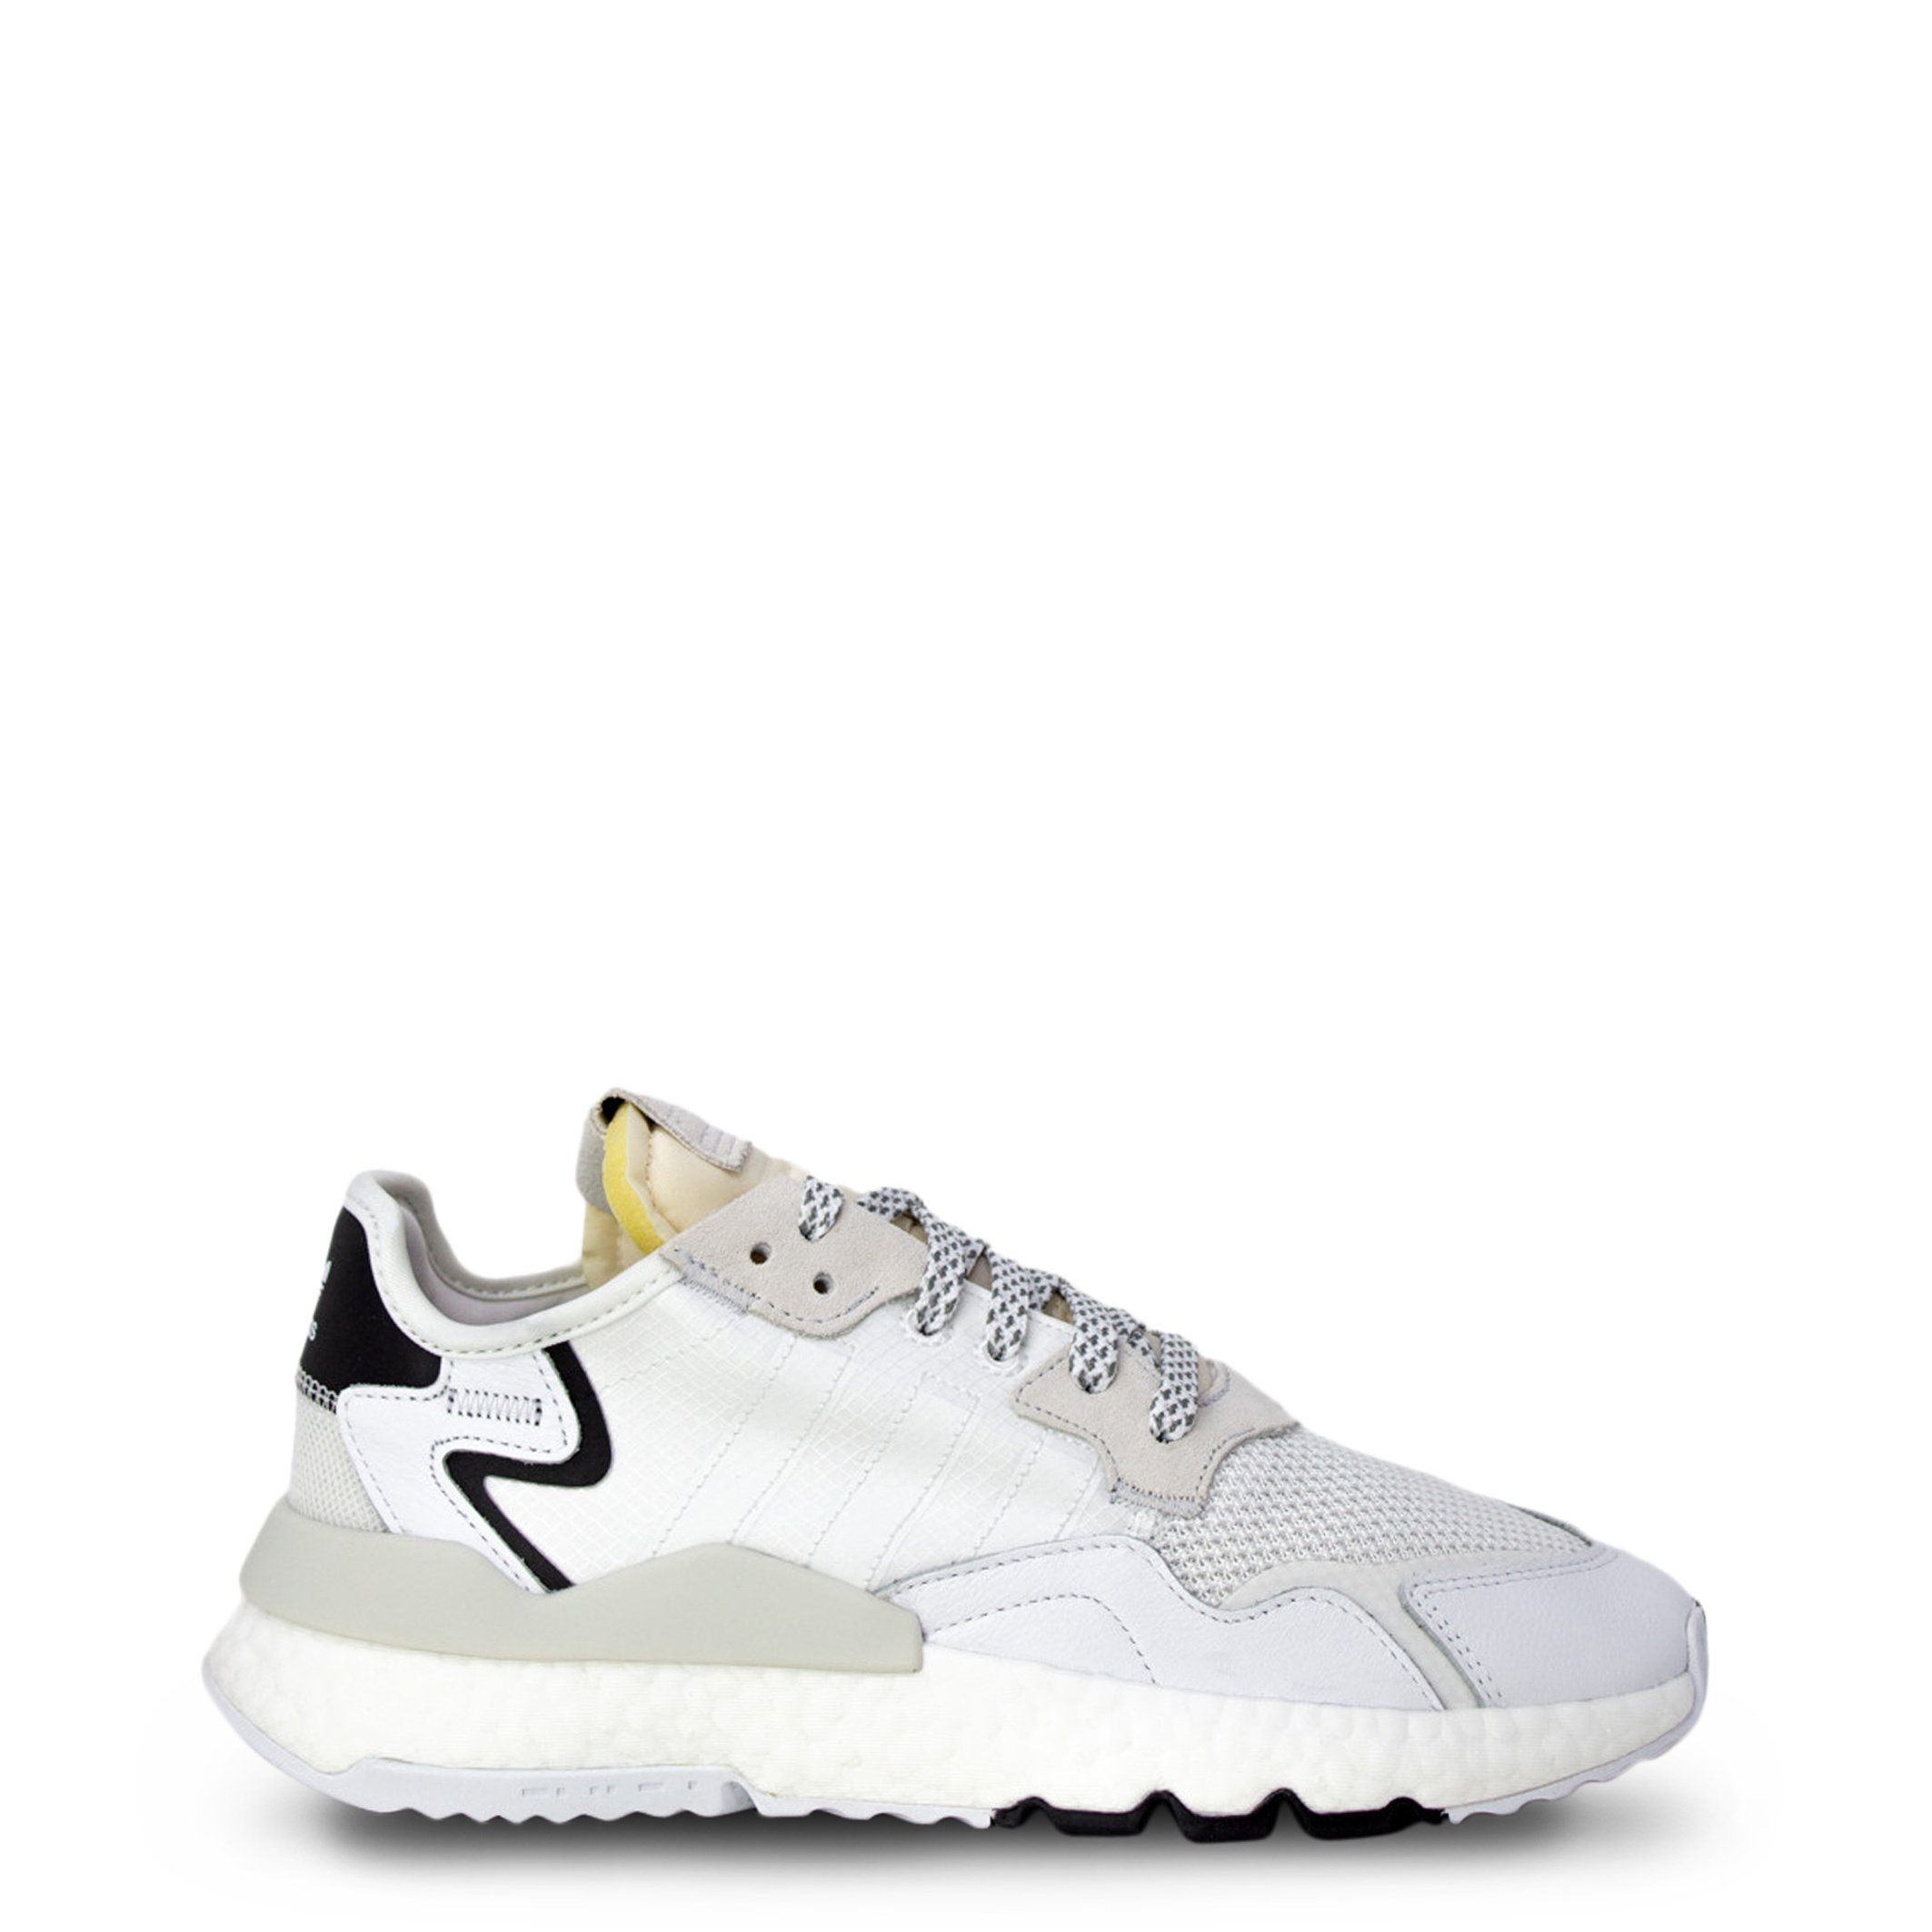 Adidas Men's Nite Jogger Trainers Various Colours EE6254 - white 11 UK